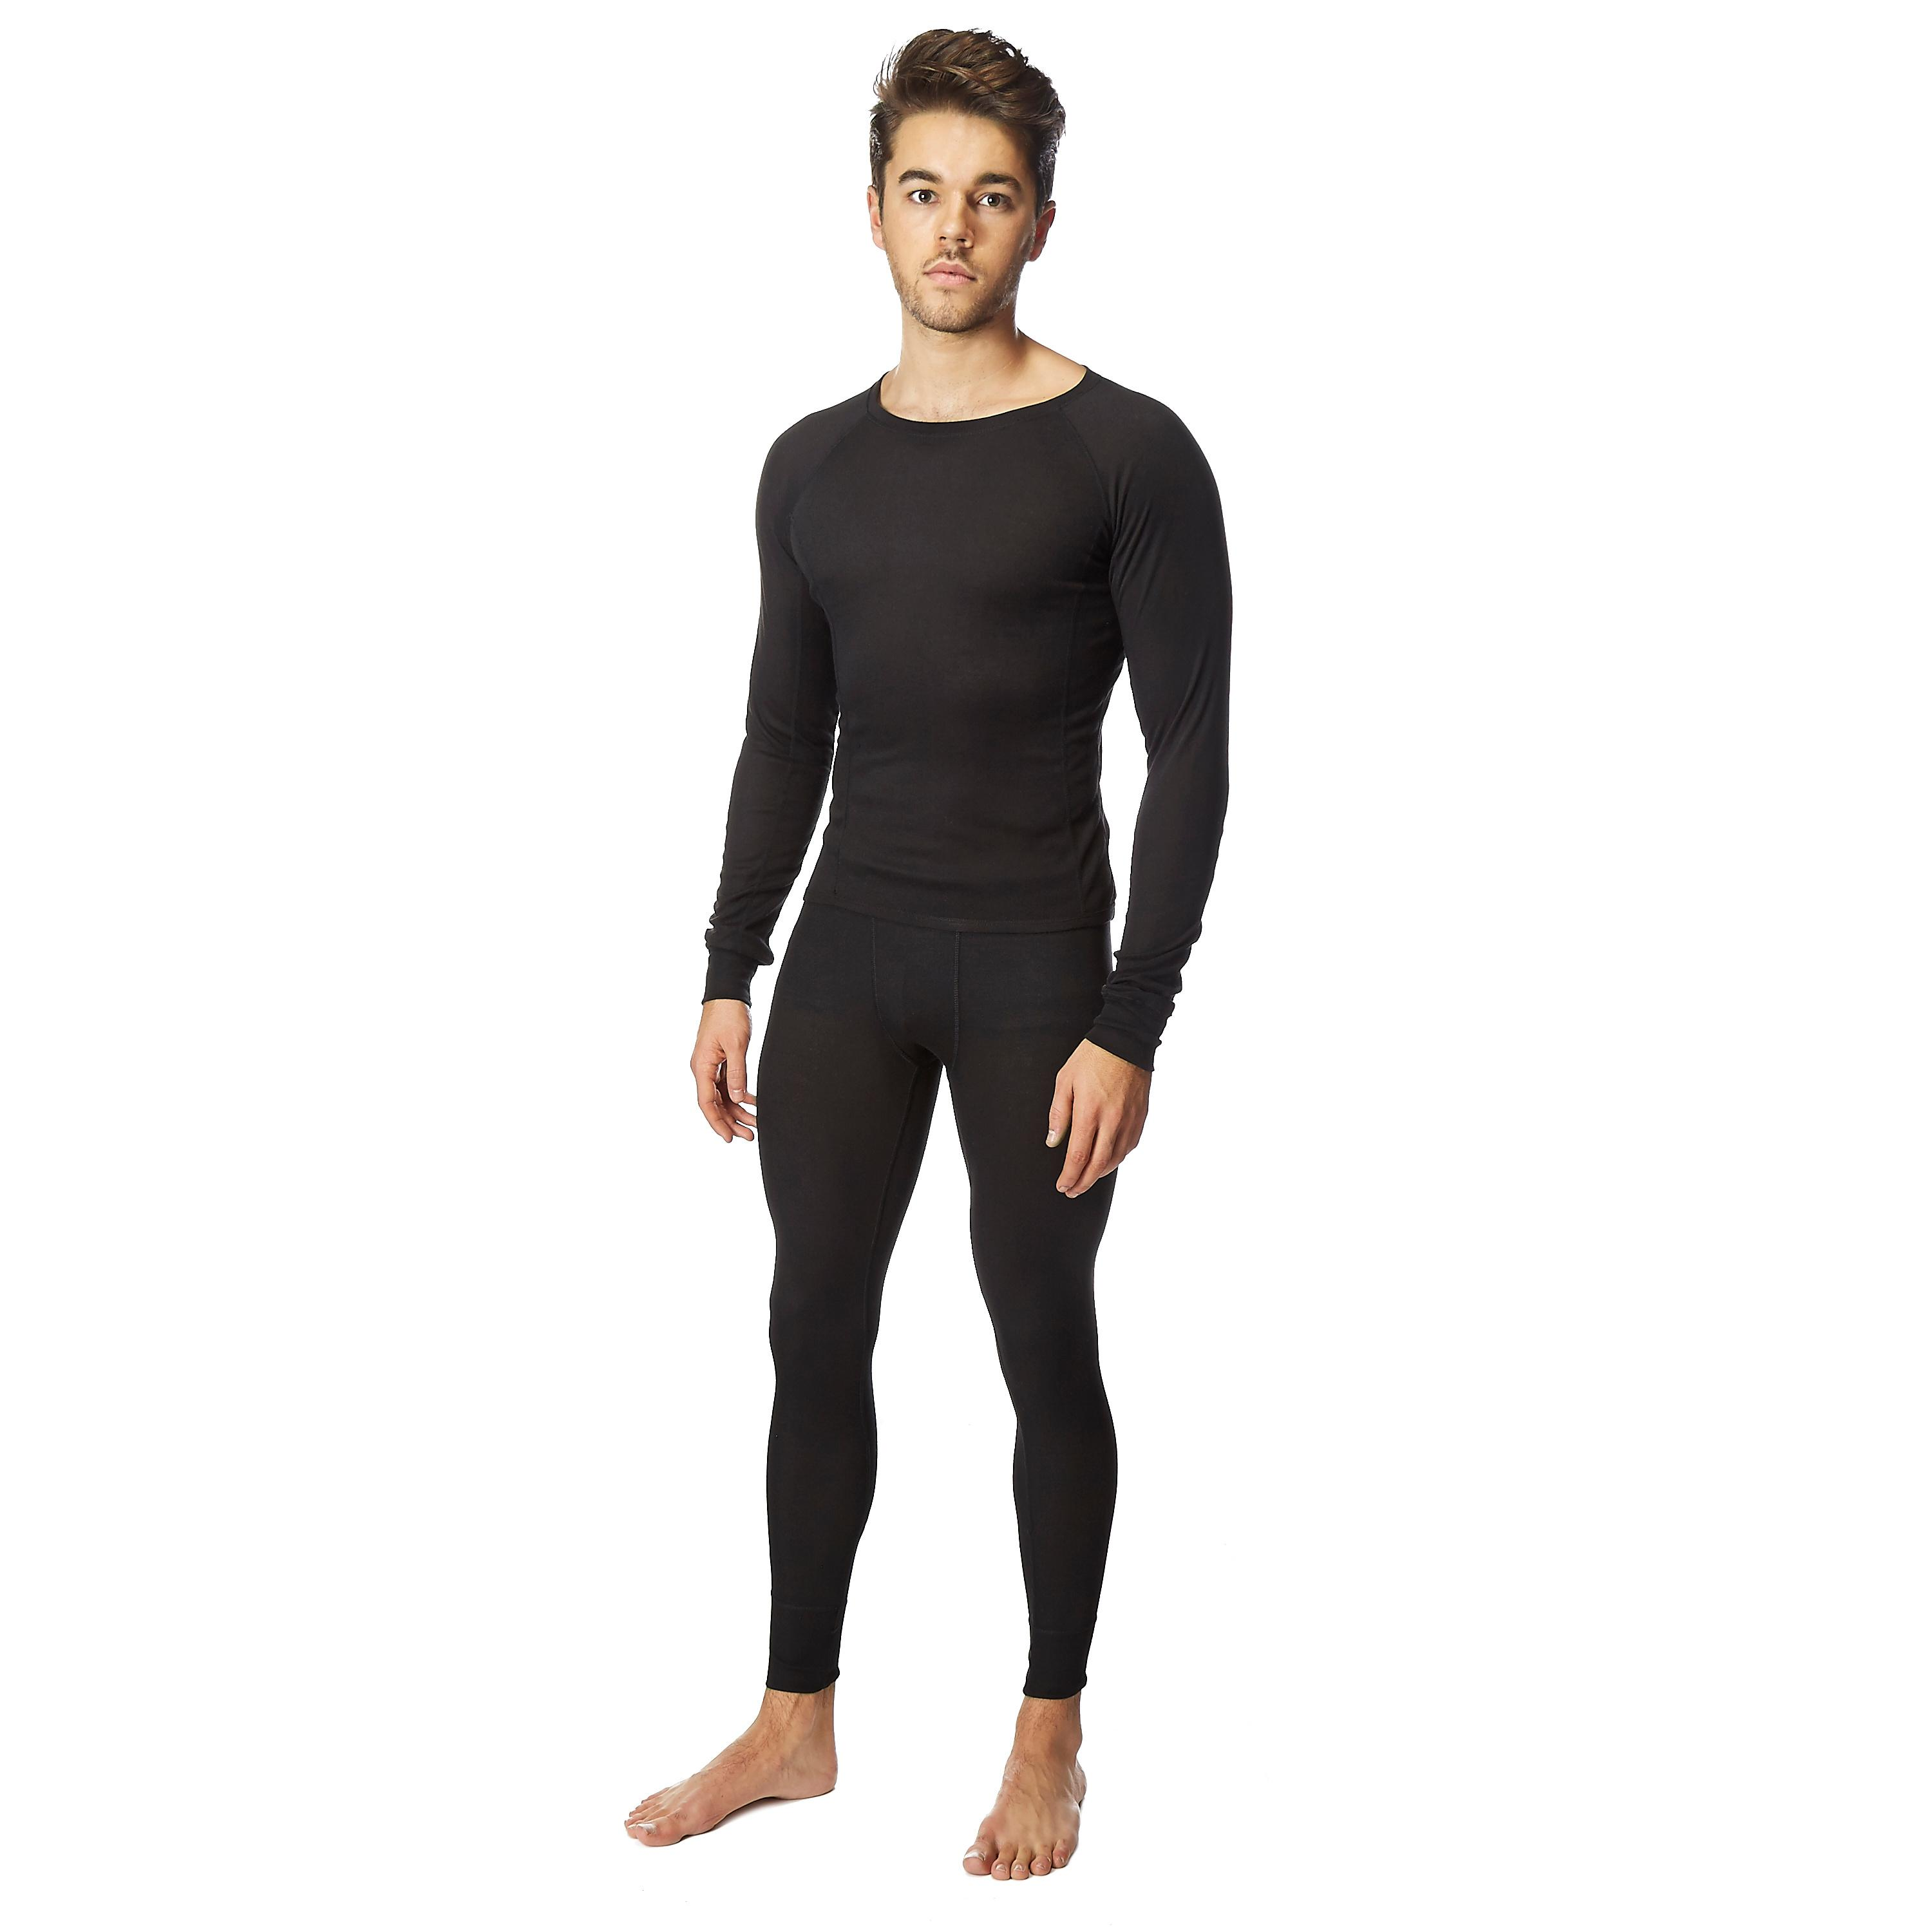 Shop for Base Layers at REI - FREE SHIPPING With $50 minimum purchase. Top quality, great selection and expert advice you can trust. % Satisfaction Guarantee.